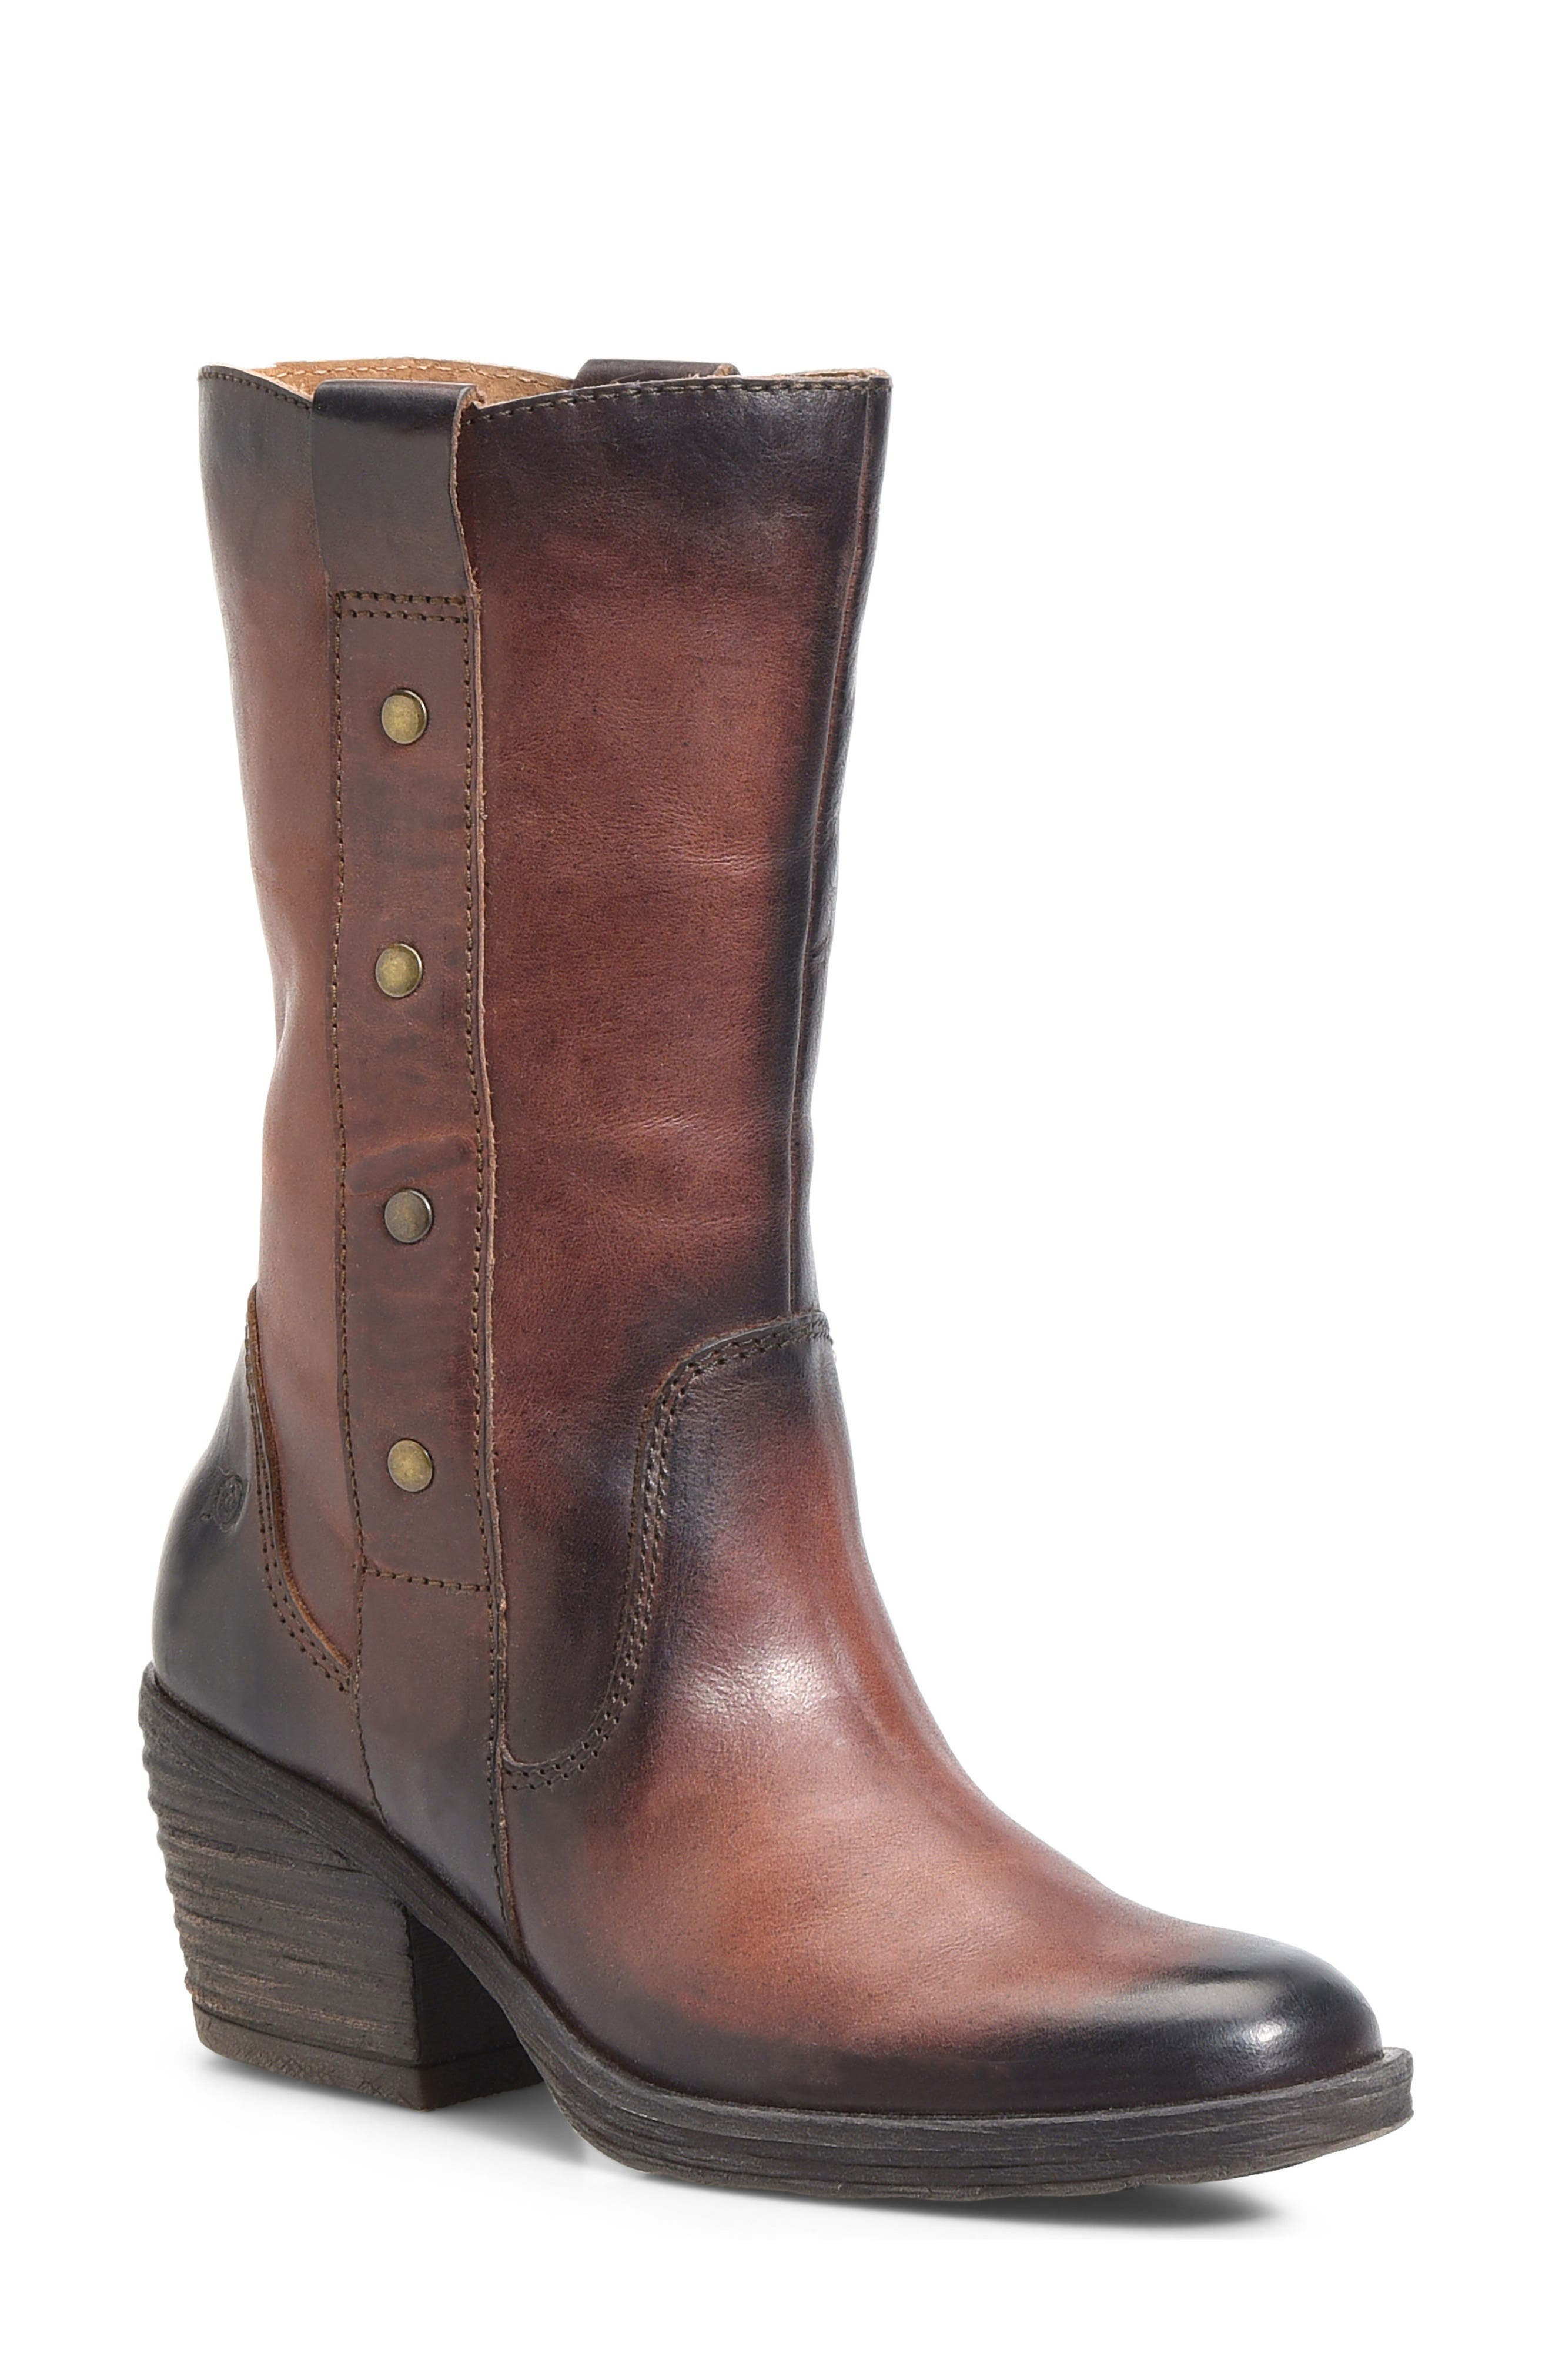 Copper Studded Boot,                             Main thumbnail 1, color,                             200